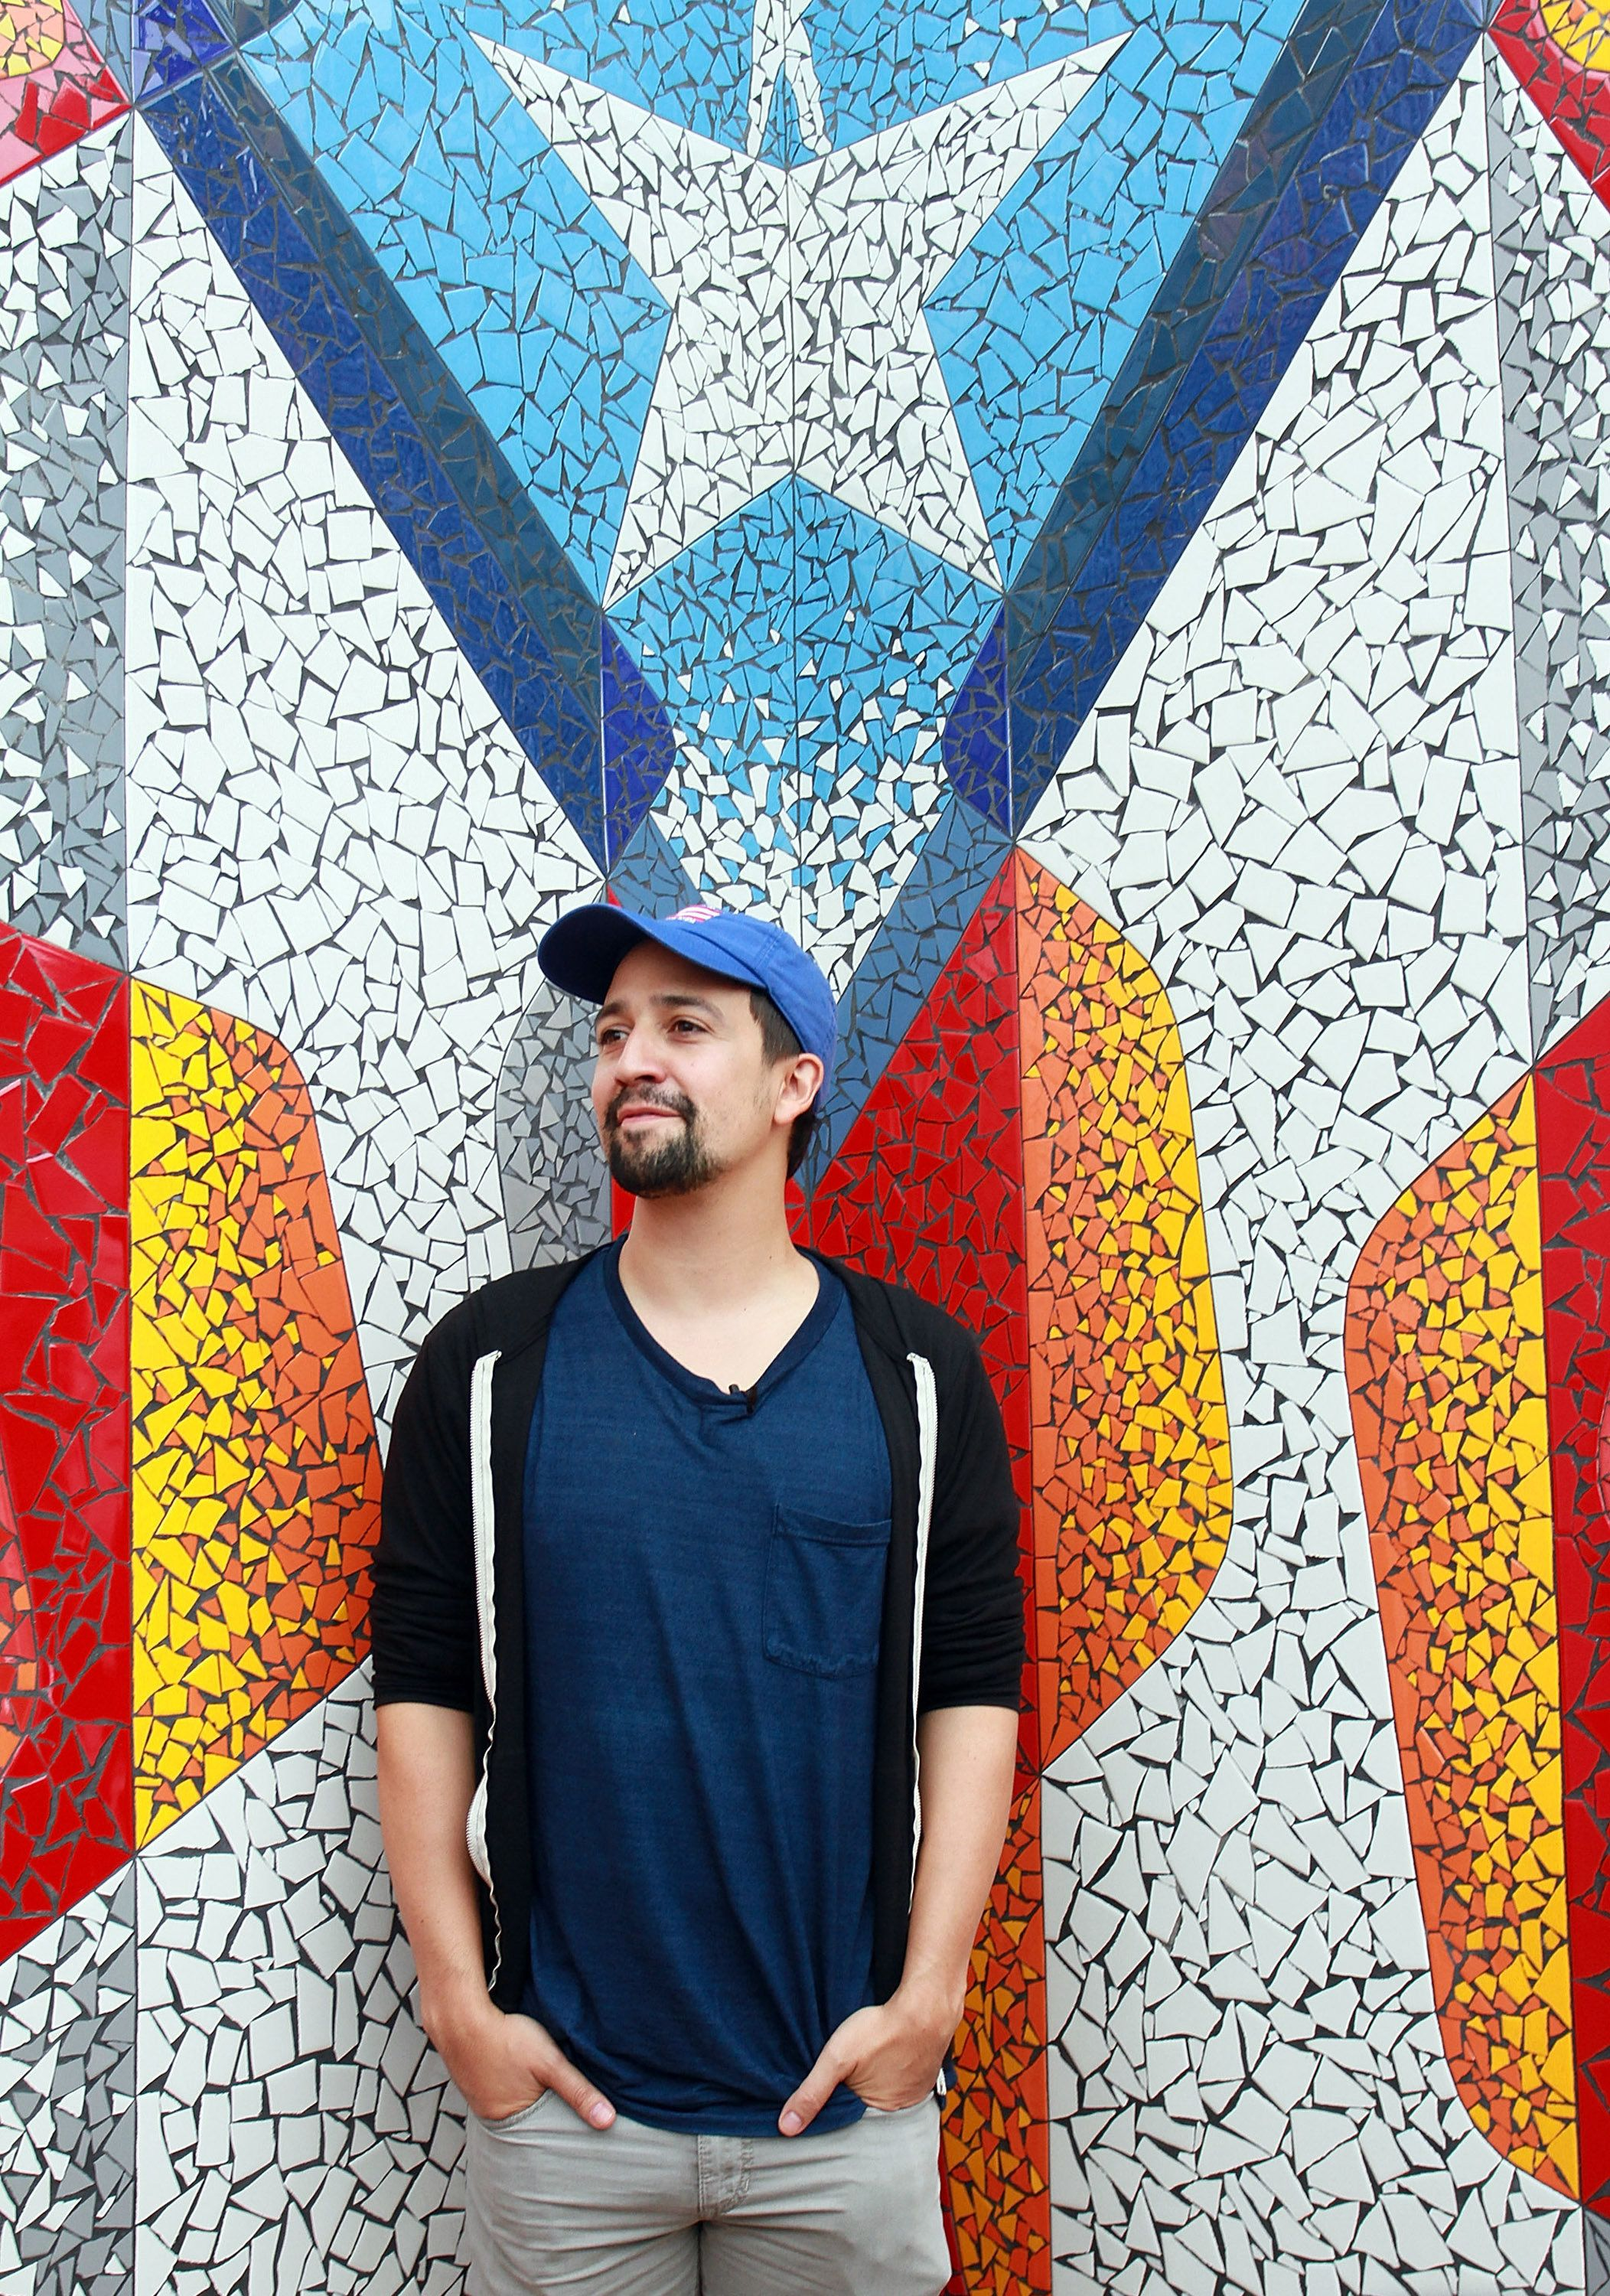 VEGA ALTA, PUERTO RICO - NOVEMBER 07:  Lin-Manuel Miranda unveils the Puerto Rican flag art at La Placita de Guisin on November 7, 2017 in Vega Alta, Puerto Rico.  (Photo by Gladys Vega/Getty Images)